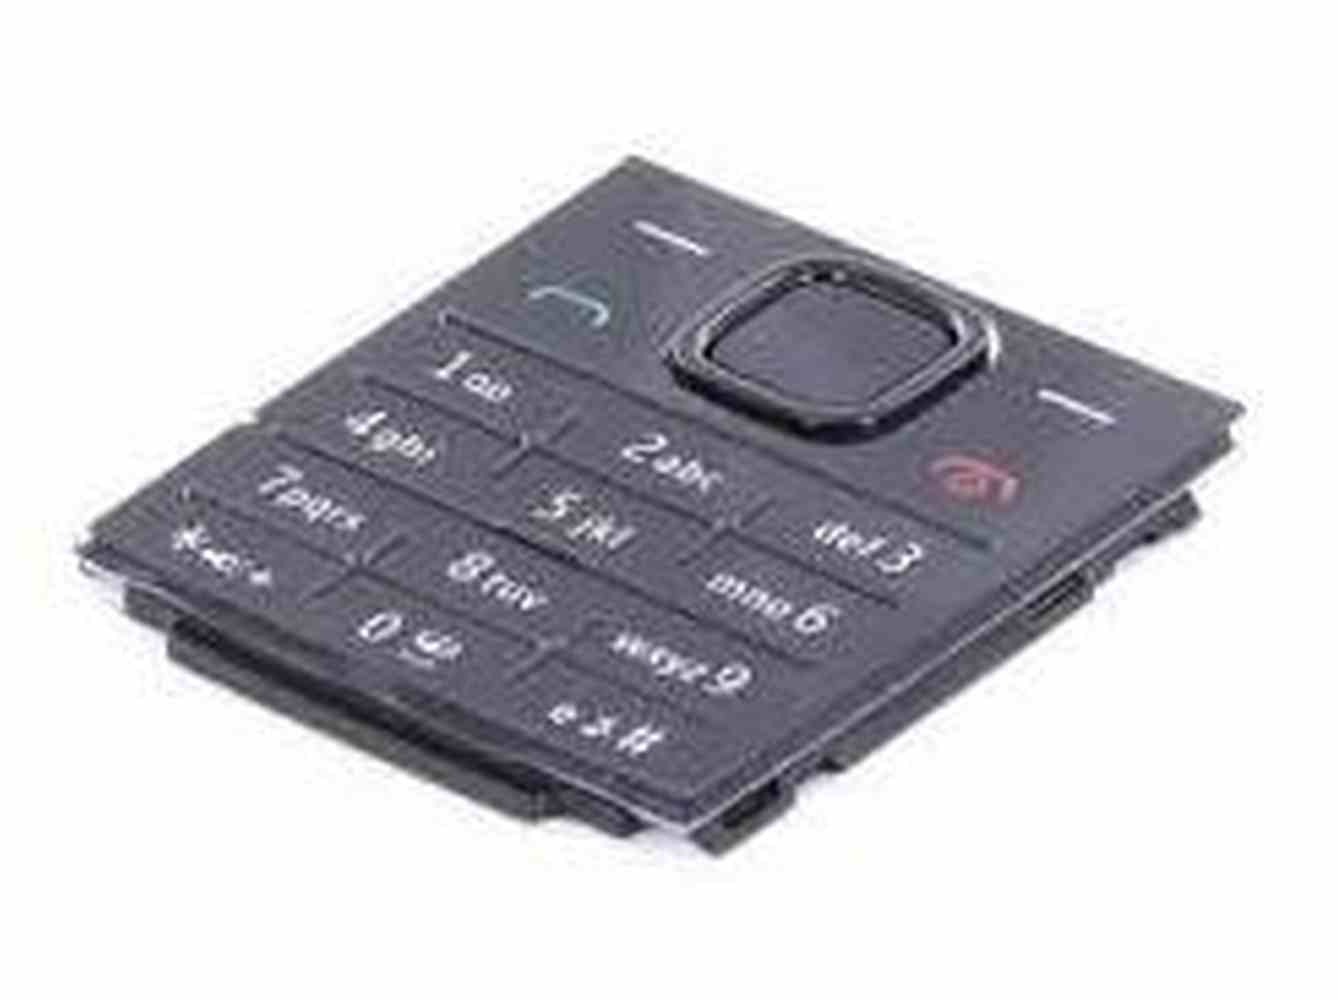 Keypad For Nokia X2-00 - Black